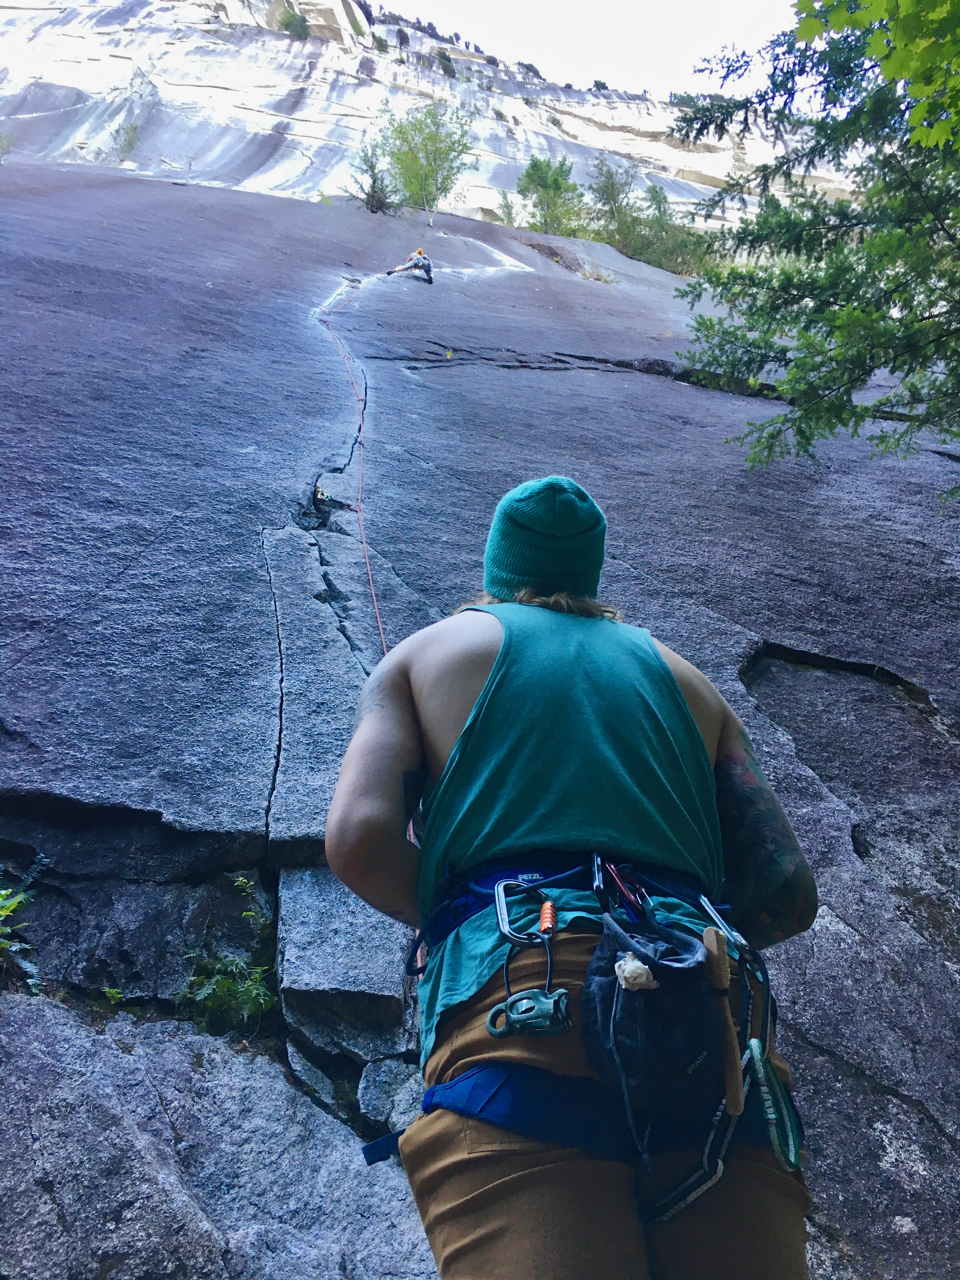 On Exasperator (5.10c), at the base of the Chief. 160 feet of perfect crack from thin fingers to thin hands. A belay mid way allows you to break this into two pitches, or rappel the route with a single 60m rope.